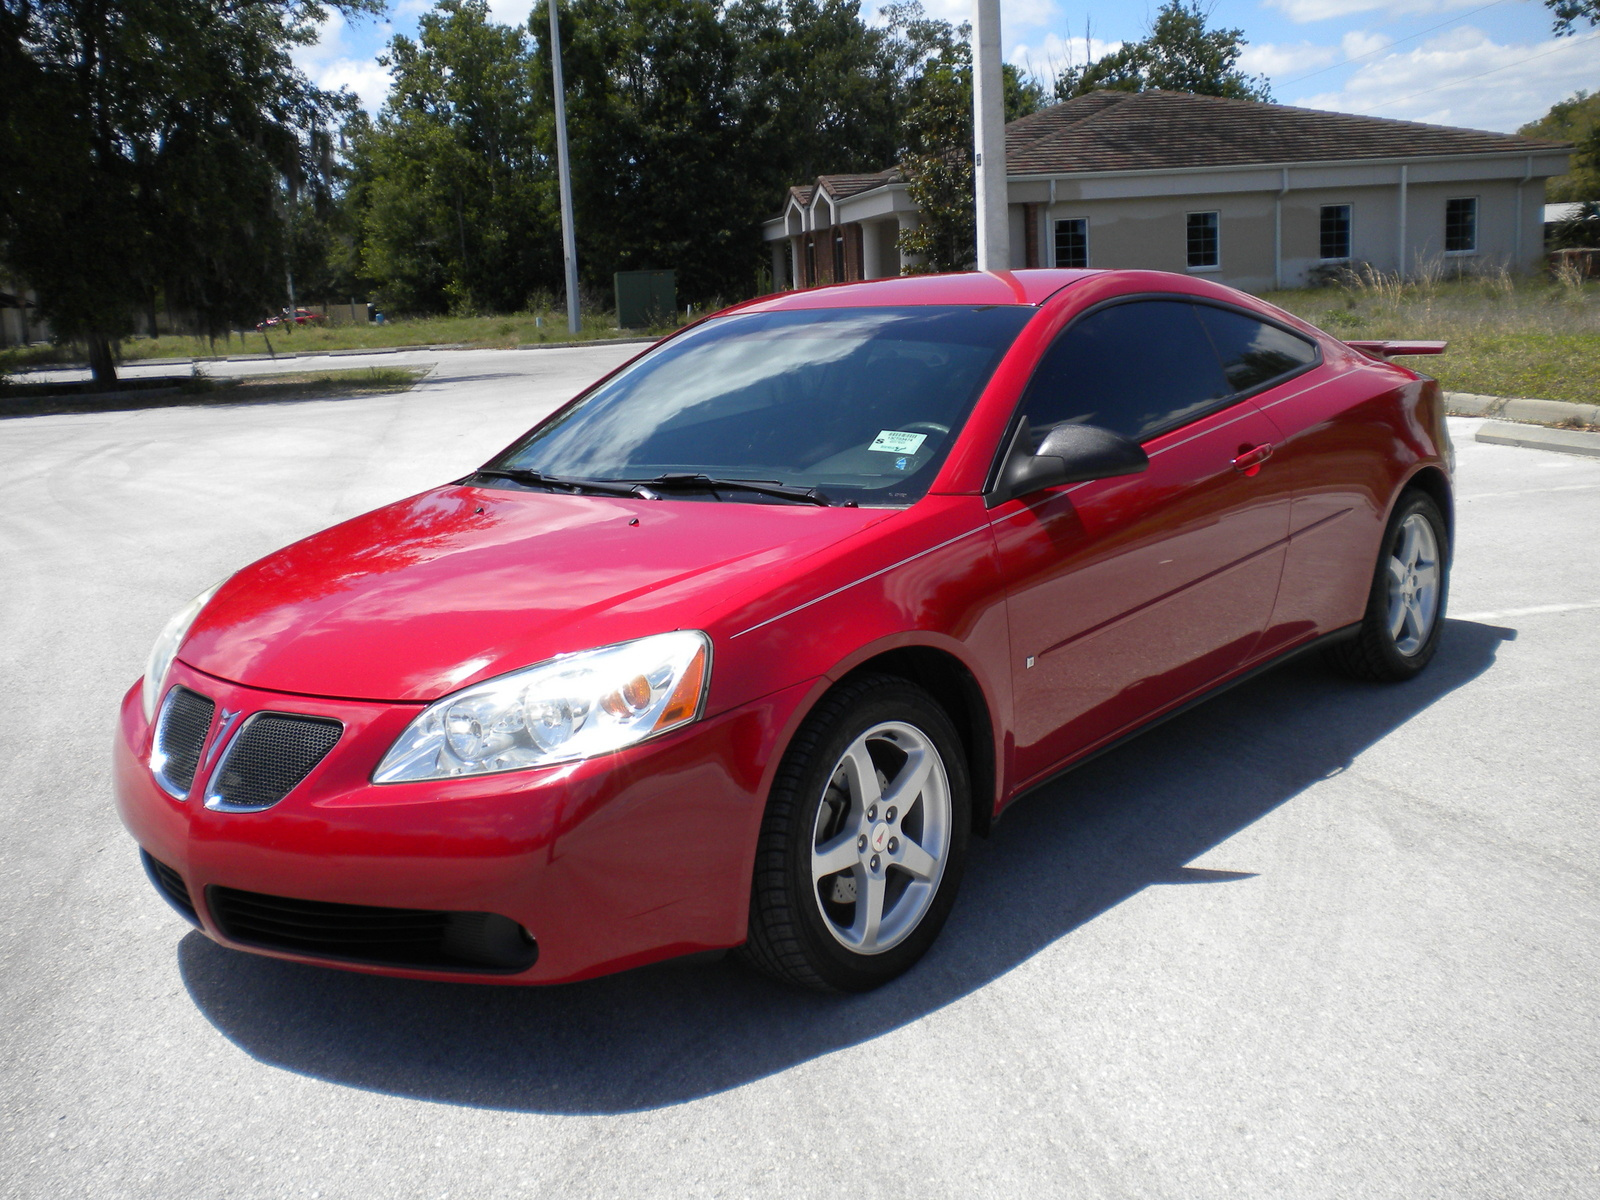 Pontiac g6 photo - 2